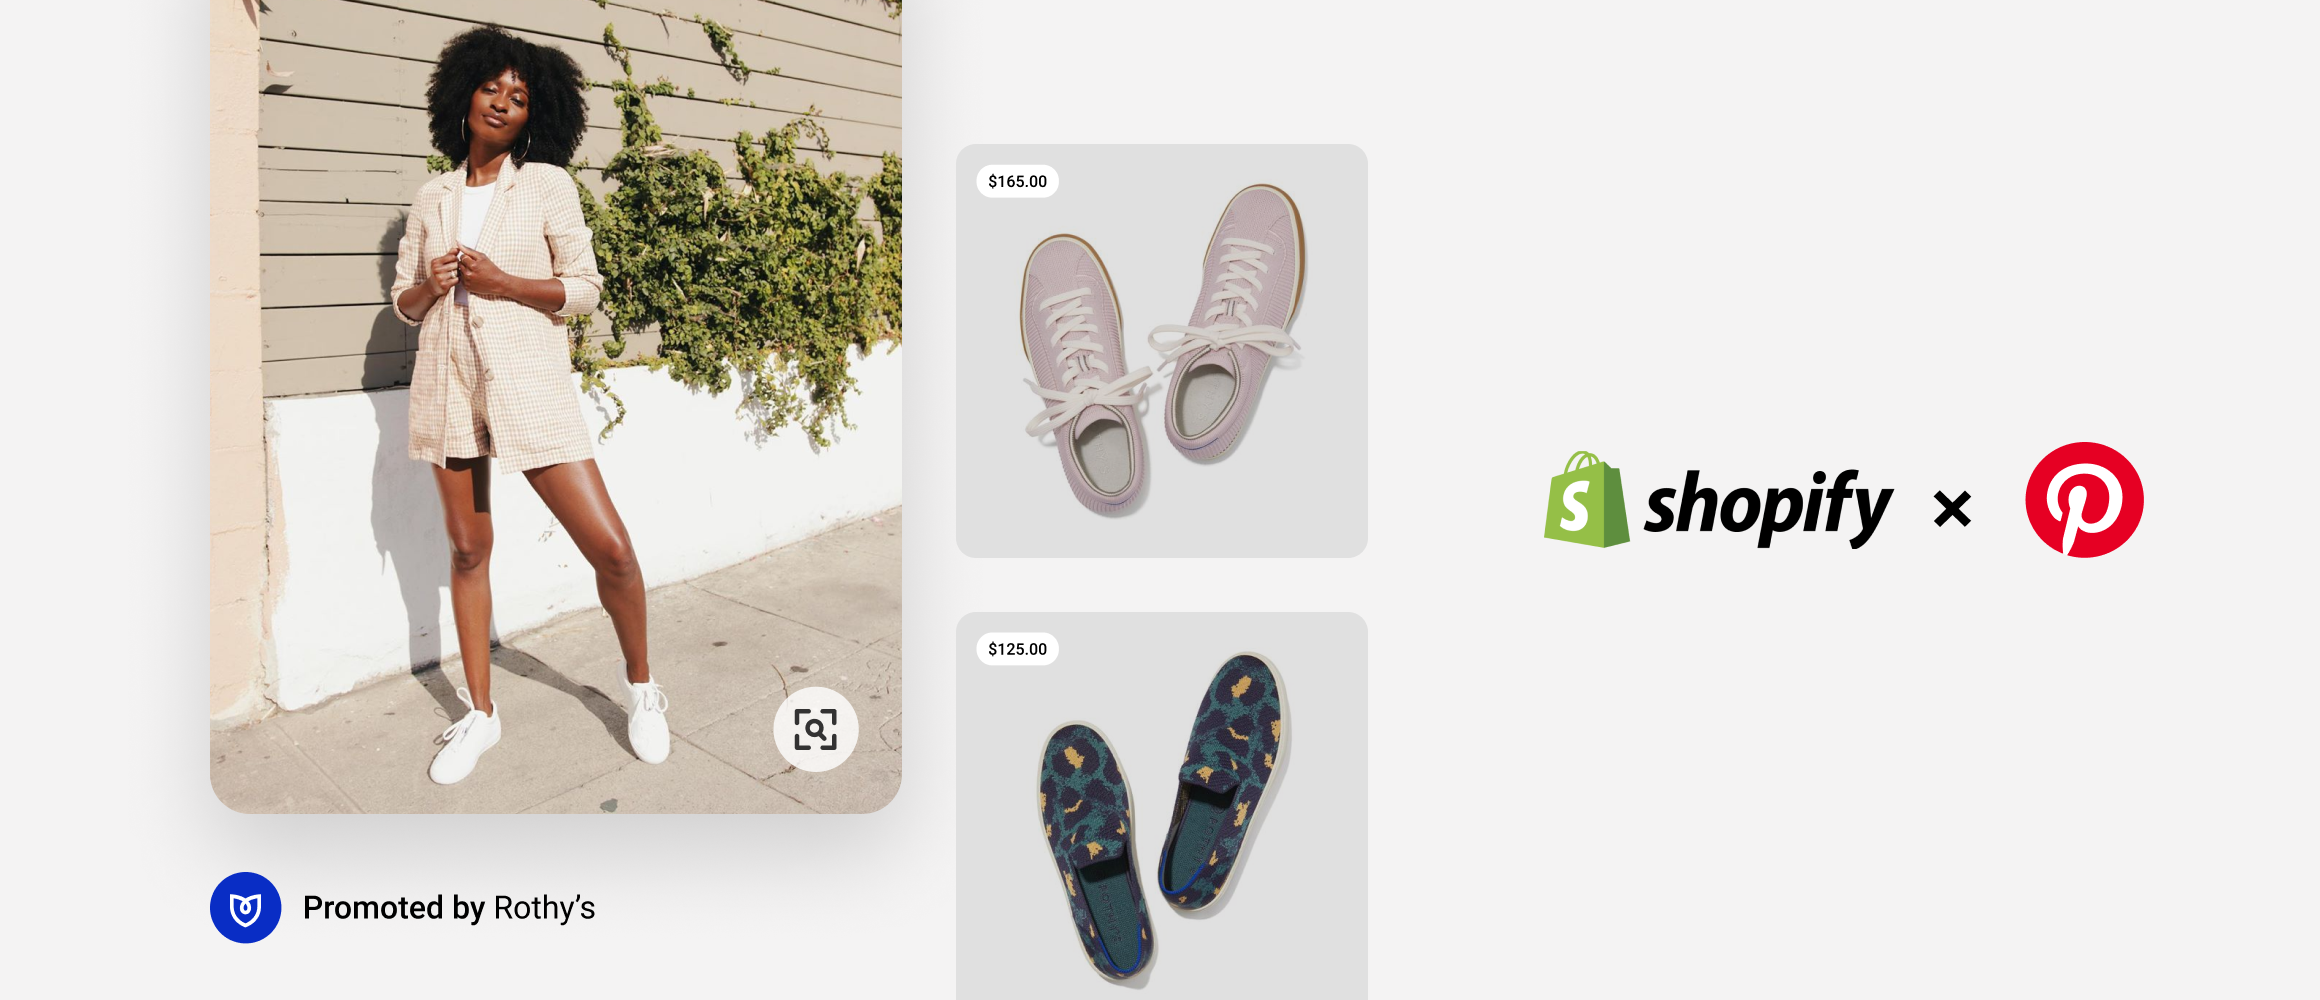 Pinterest Expands Shopify Partnership